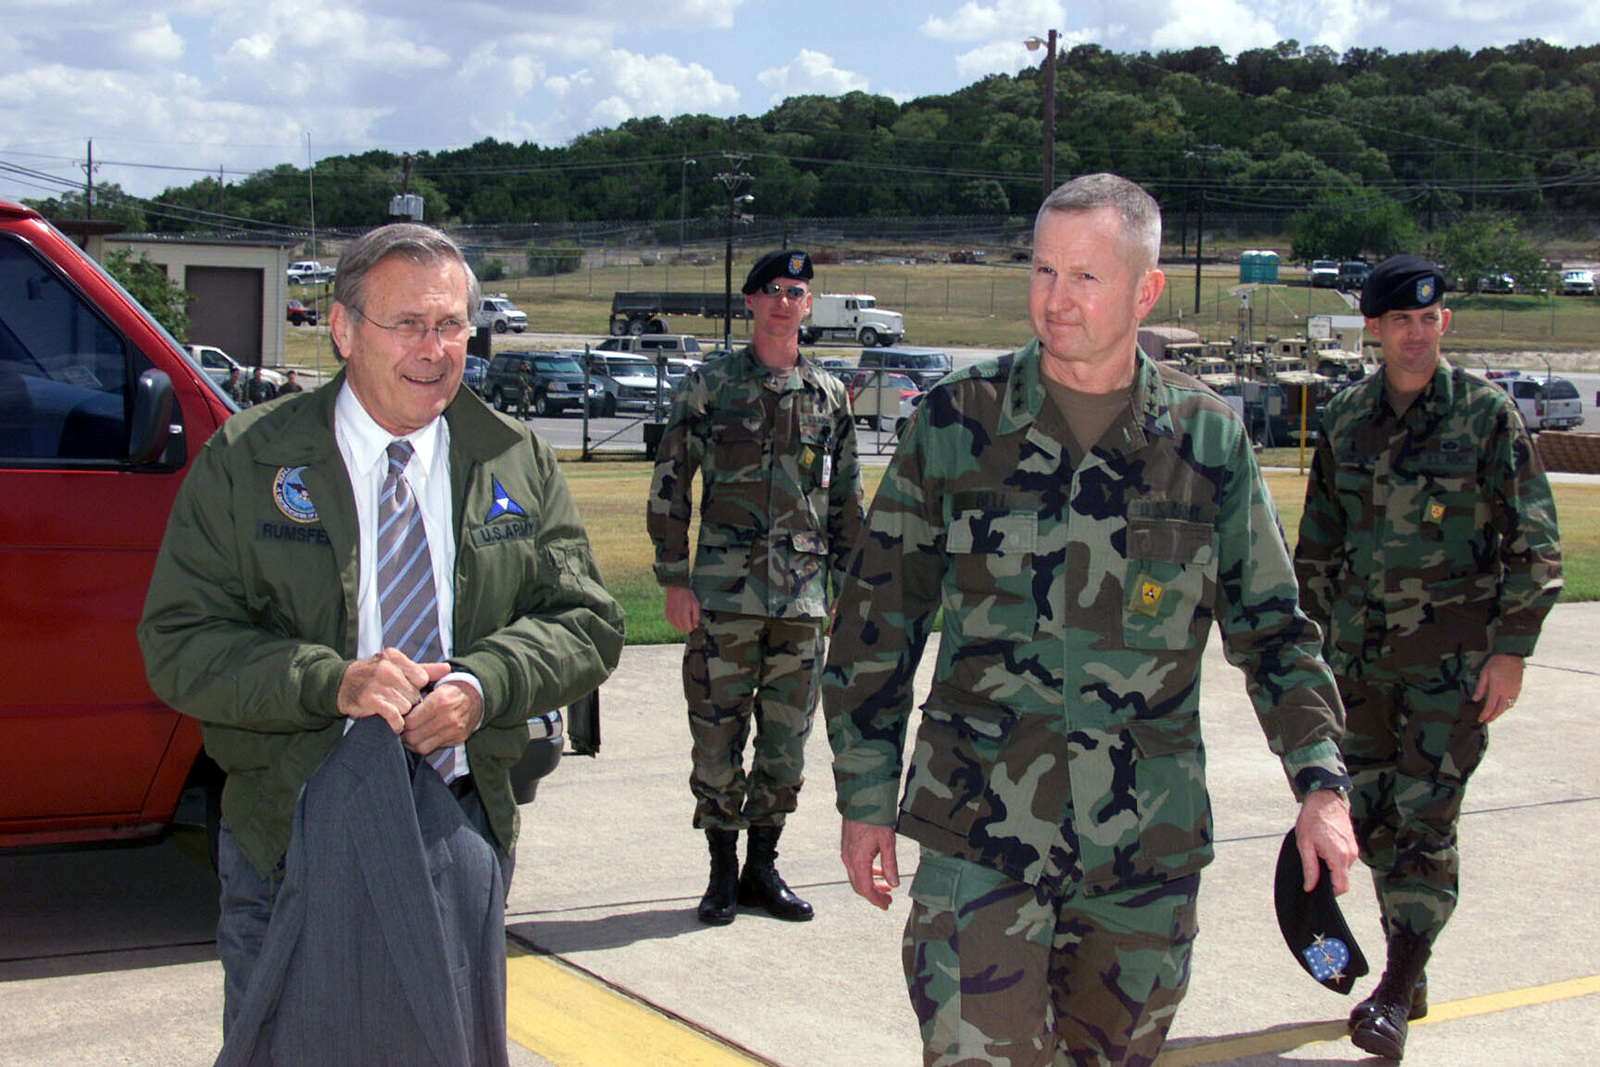 U.S. Army LT. Gen. Burwell B. Bell (front, right), Commander, III Corps and Fort Hood, escorts The Honorable Donald H. Rumsfeld (left), U.S. Secretary of Defense, to his airplane at Fort Hood's Robert Gray Army Airfield after the Secretary's Town Hall Meeting in Howze Theater, Fort Hood, Texas, on Aug. 21, 2002. (U.S. Army photo by Christopher J. Varville) (Released)